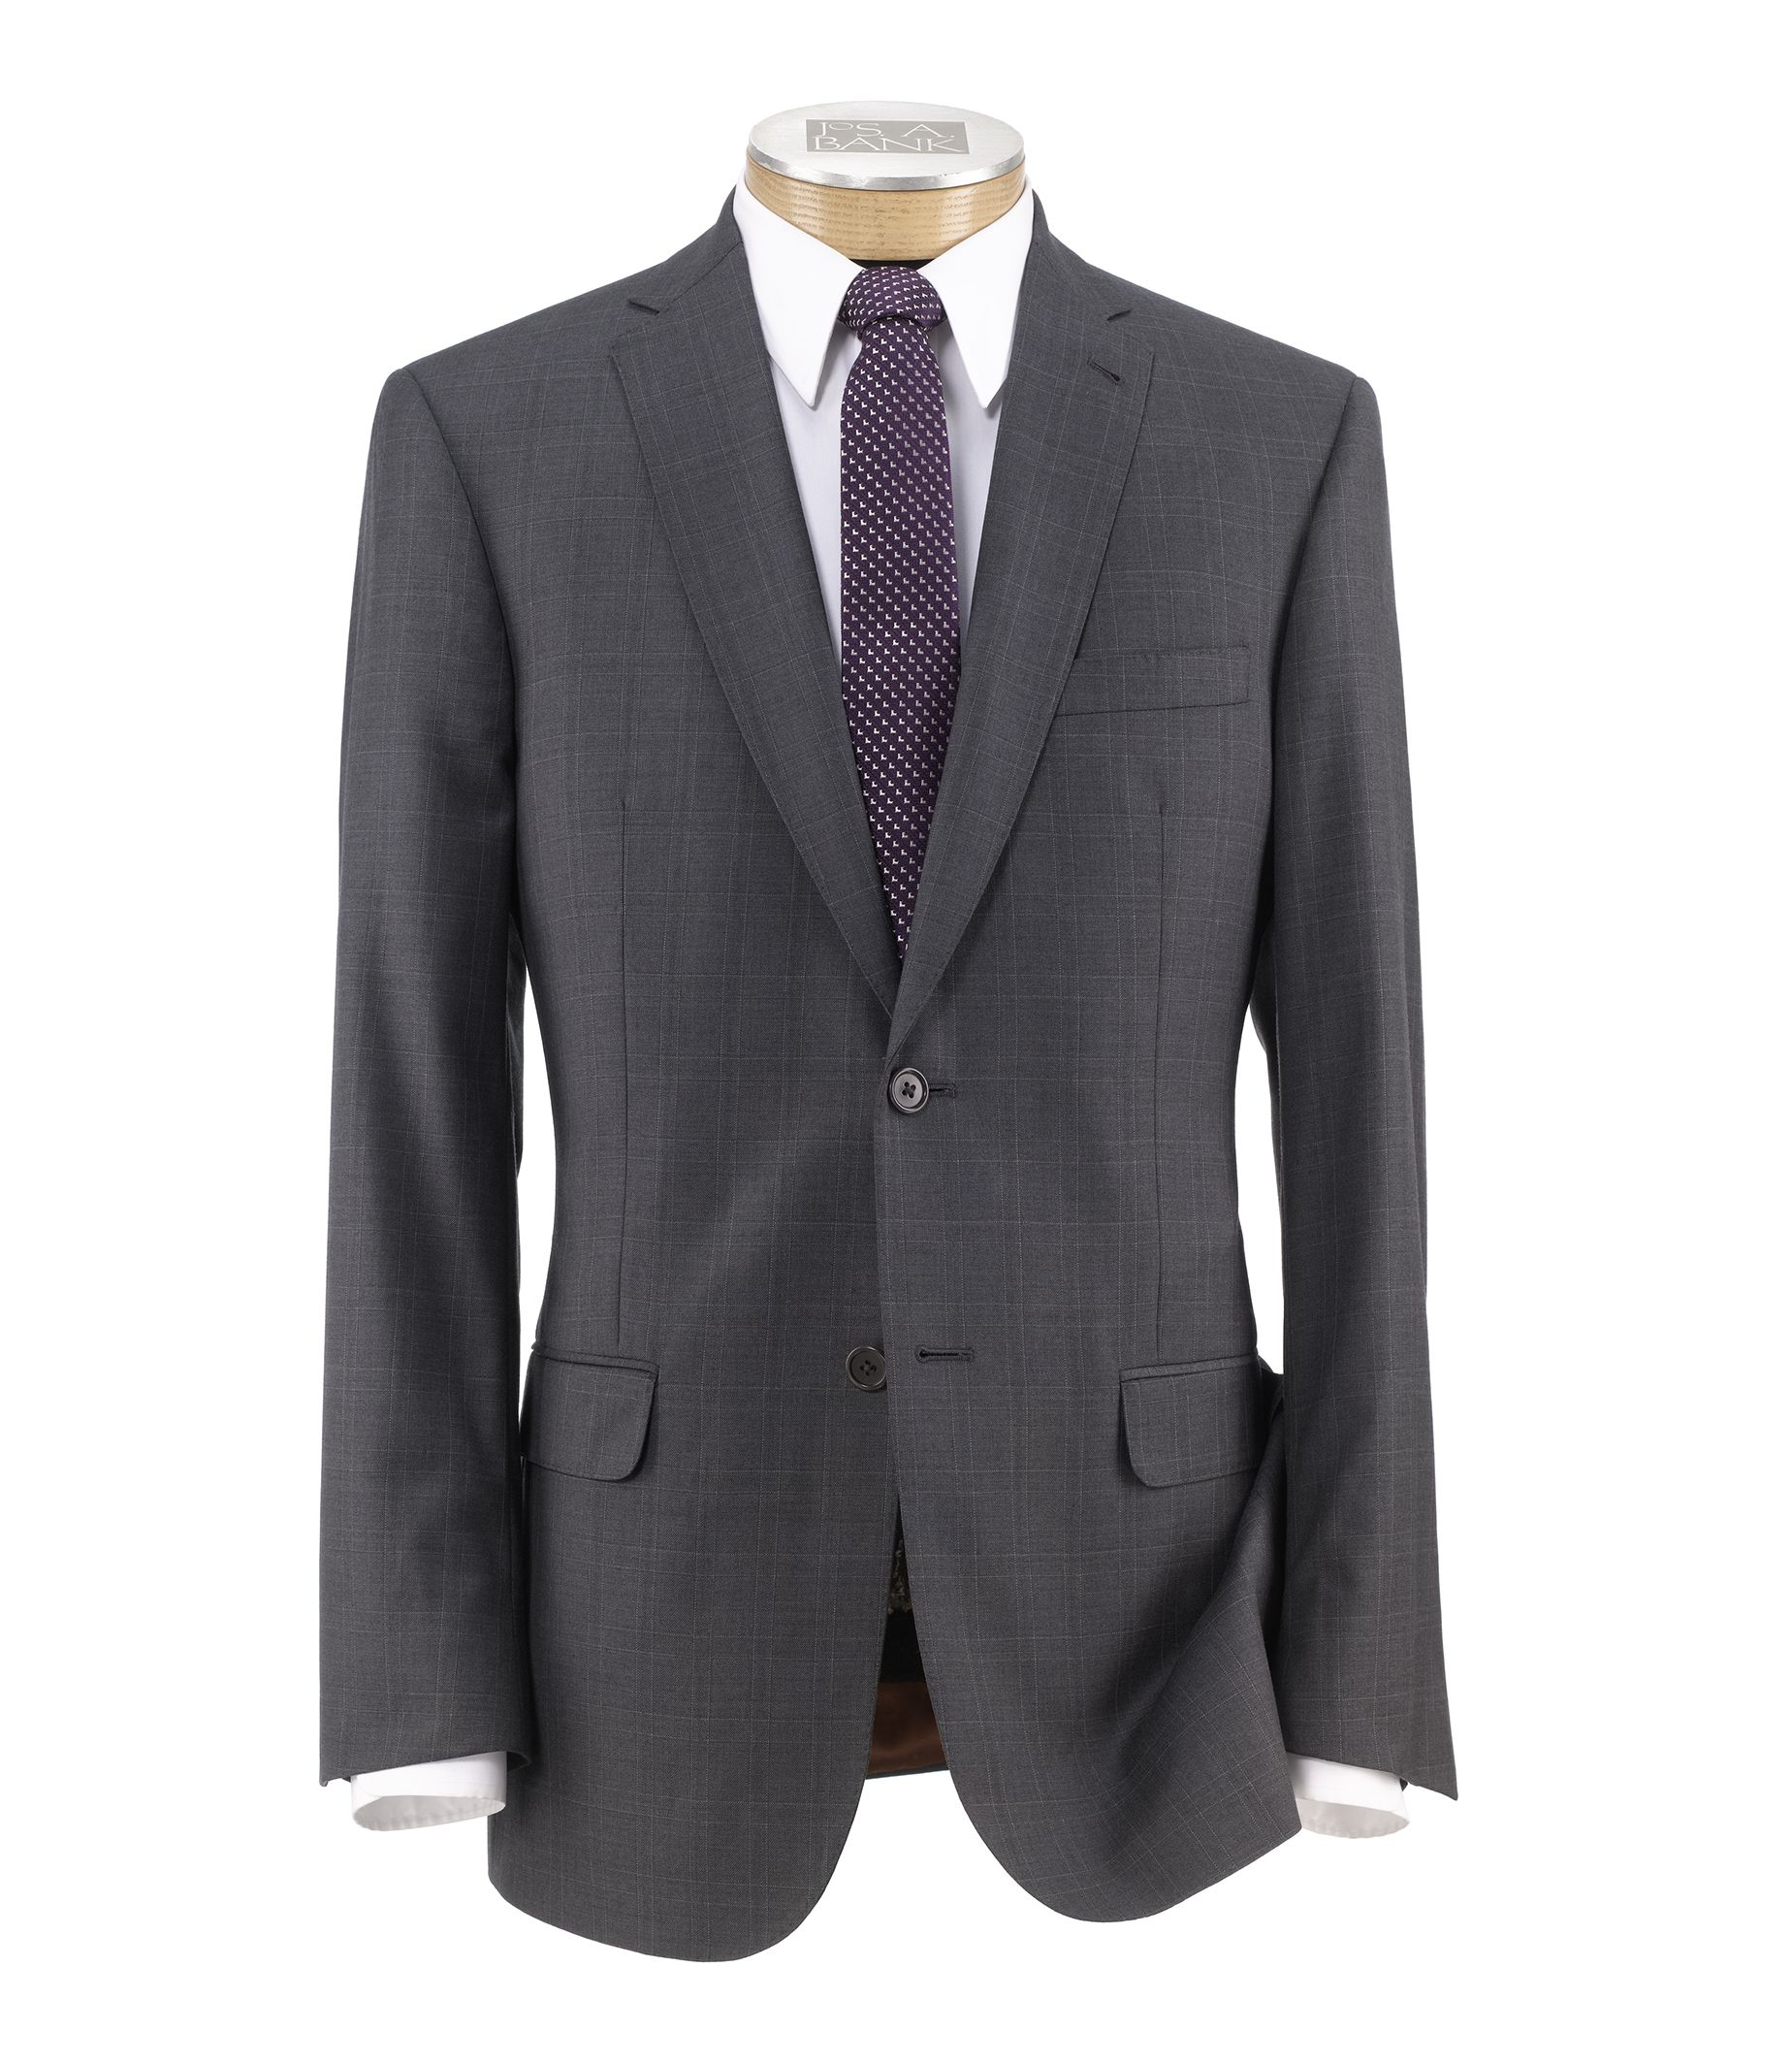 Joseph Slim Fit 2-Button Suits with Plain Front Trousers- Grey Twill Windowpane